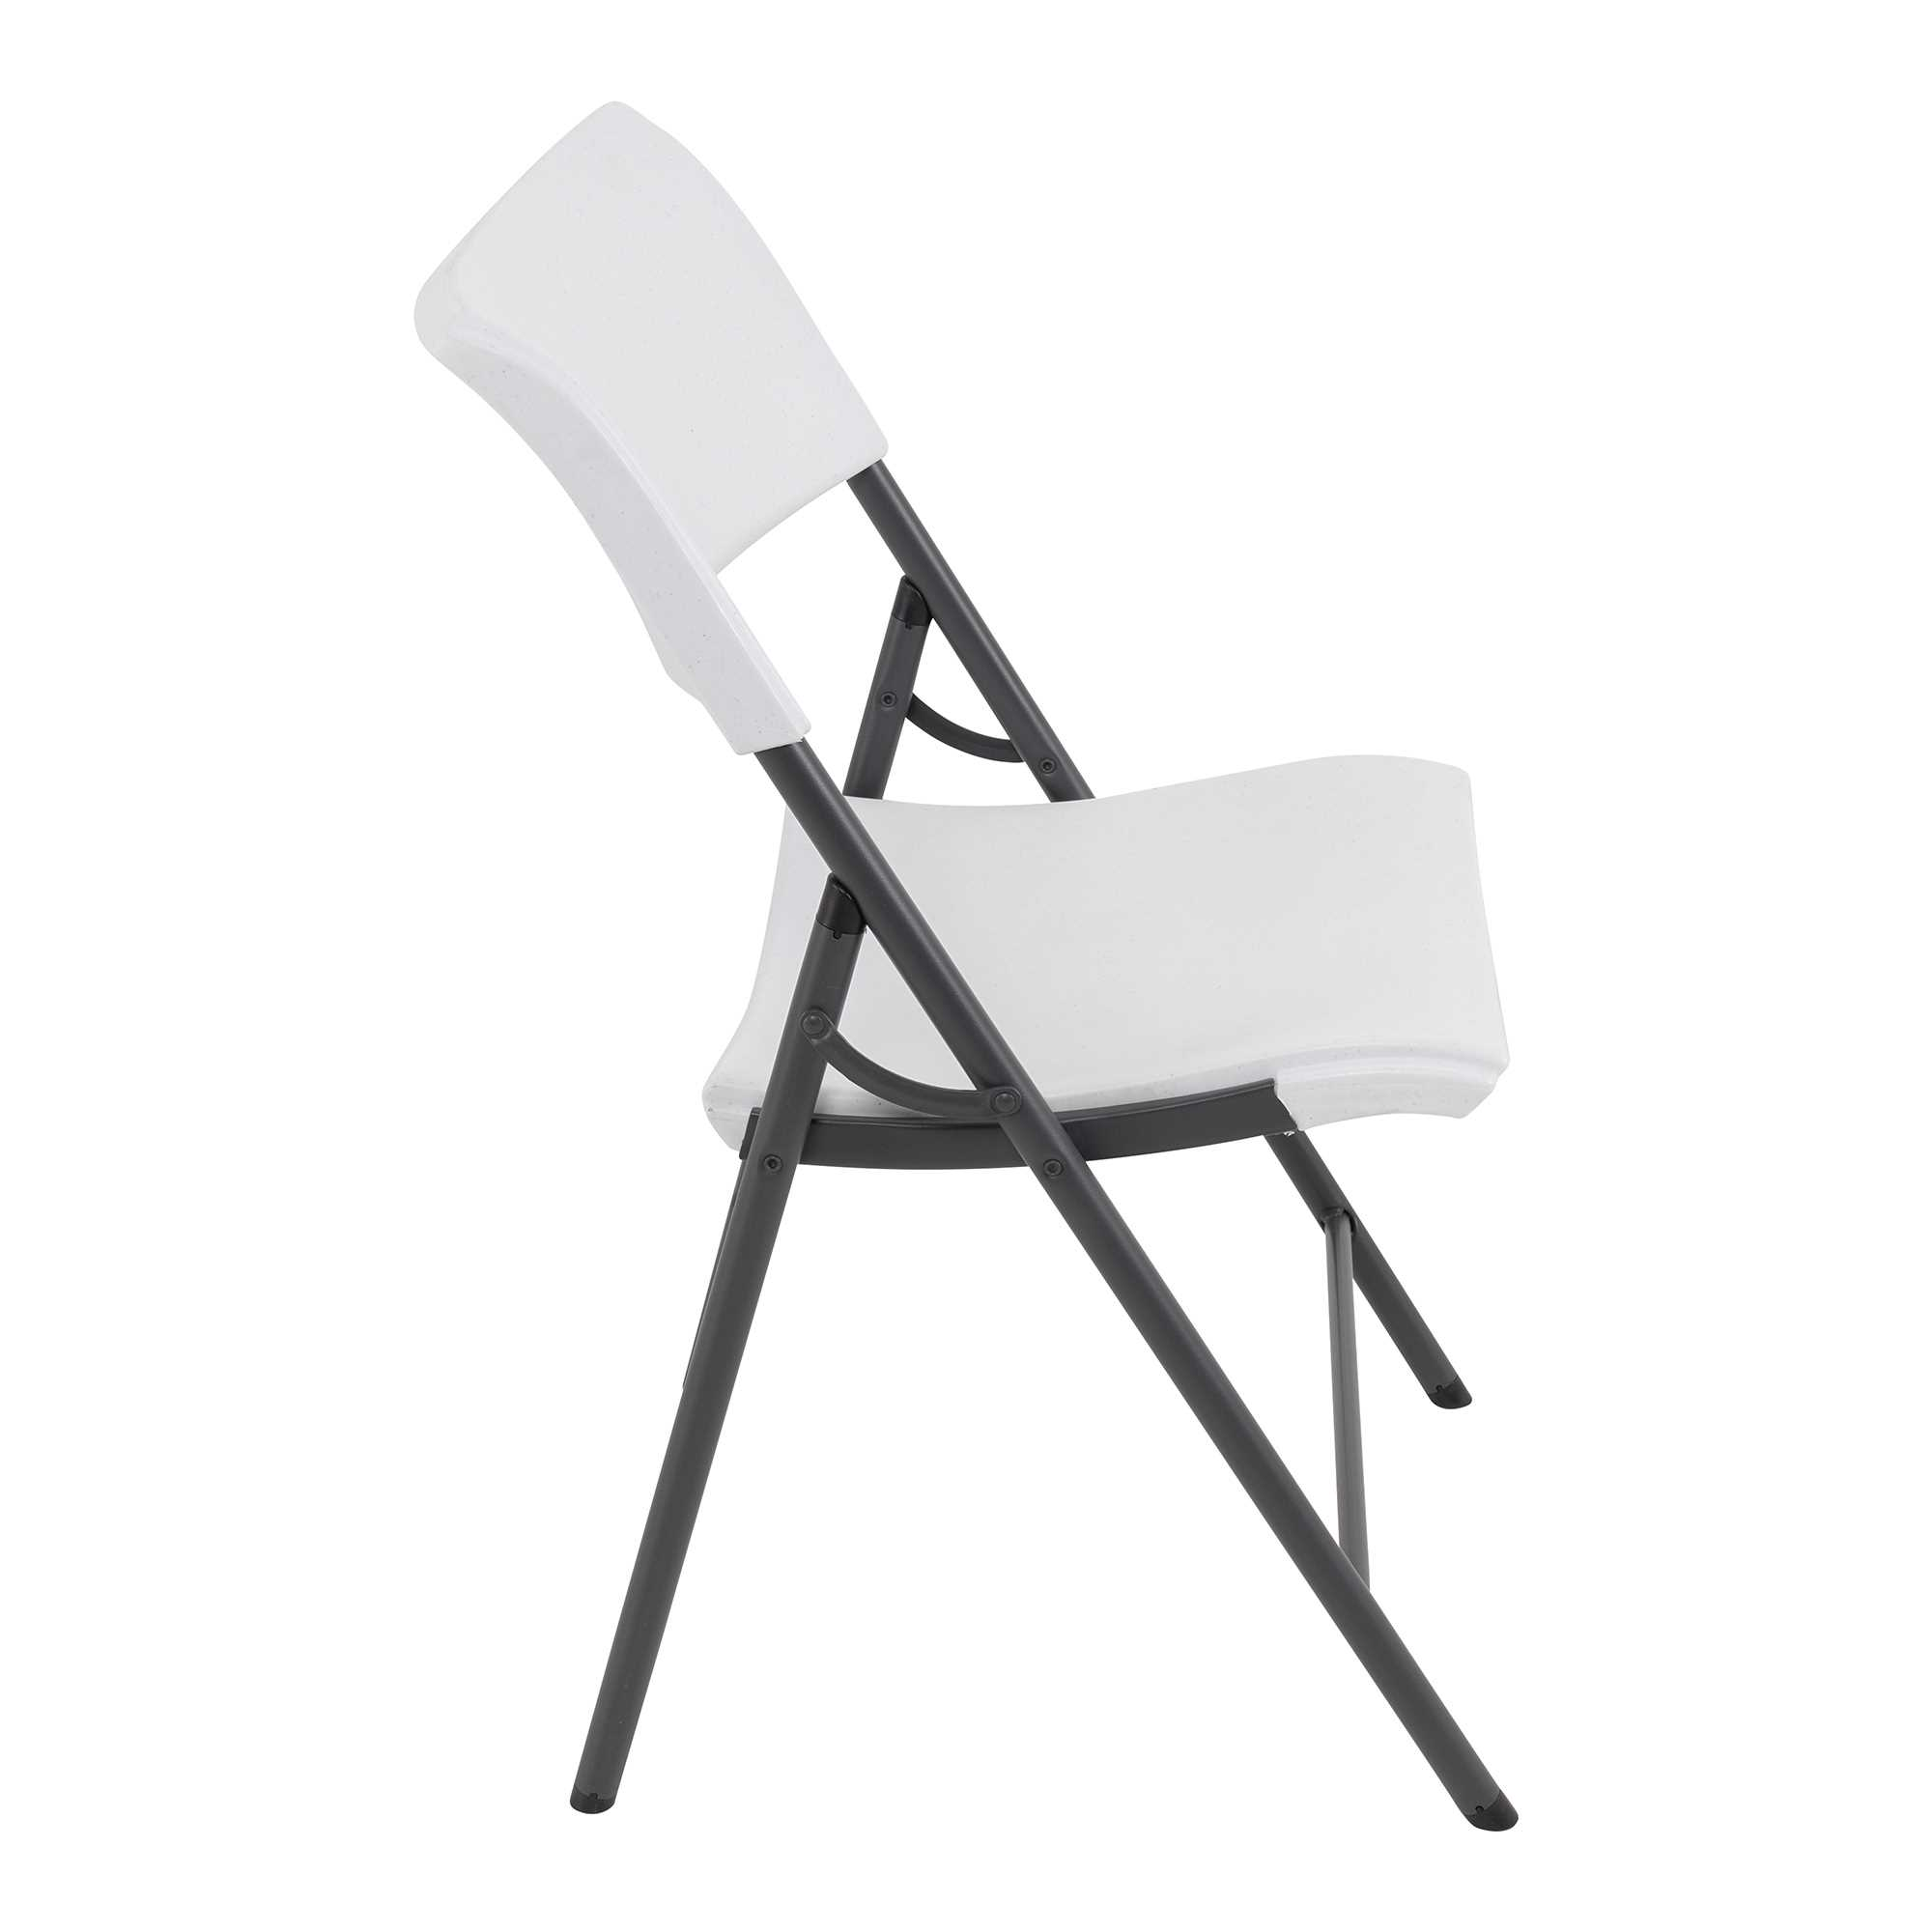 Chaise pliante contemporaine BLANC